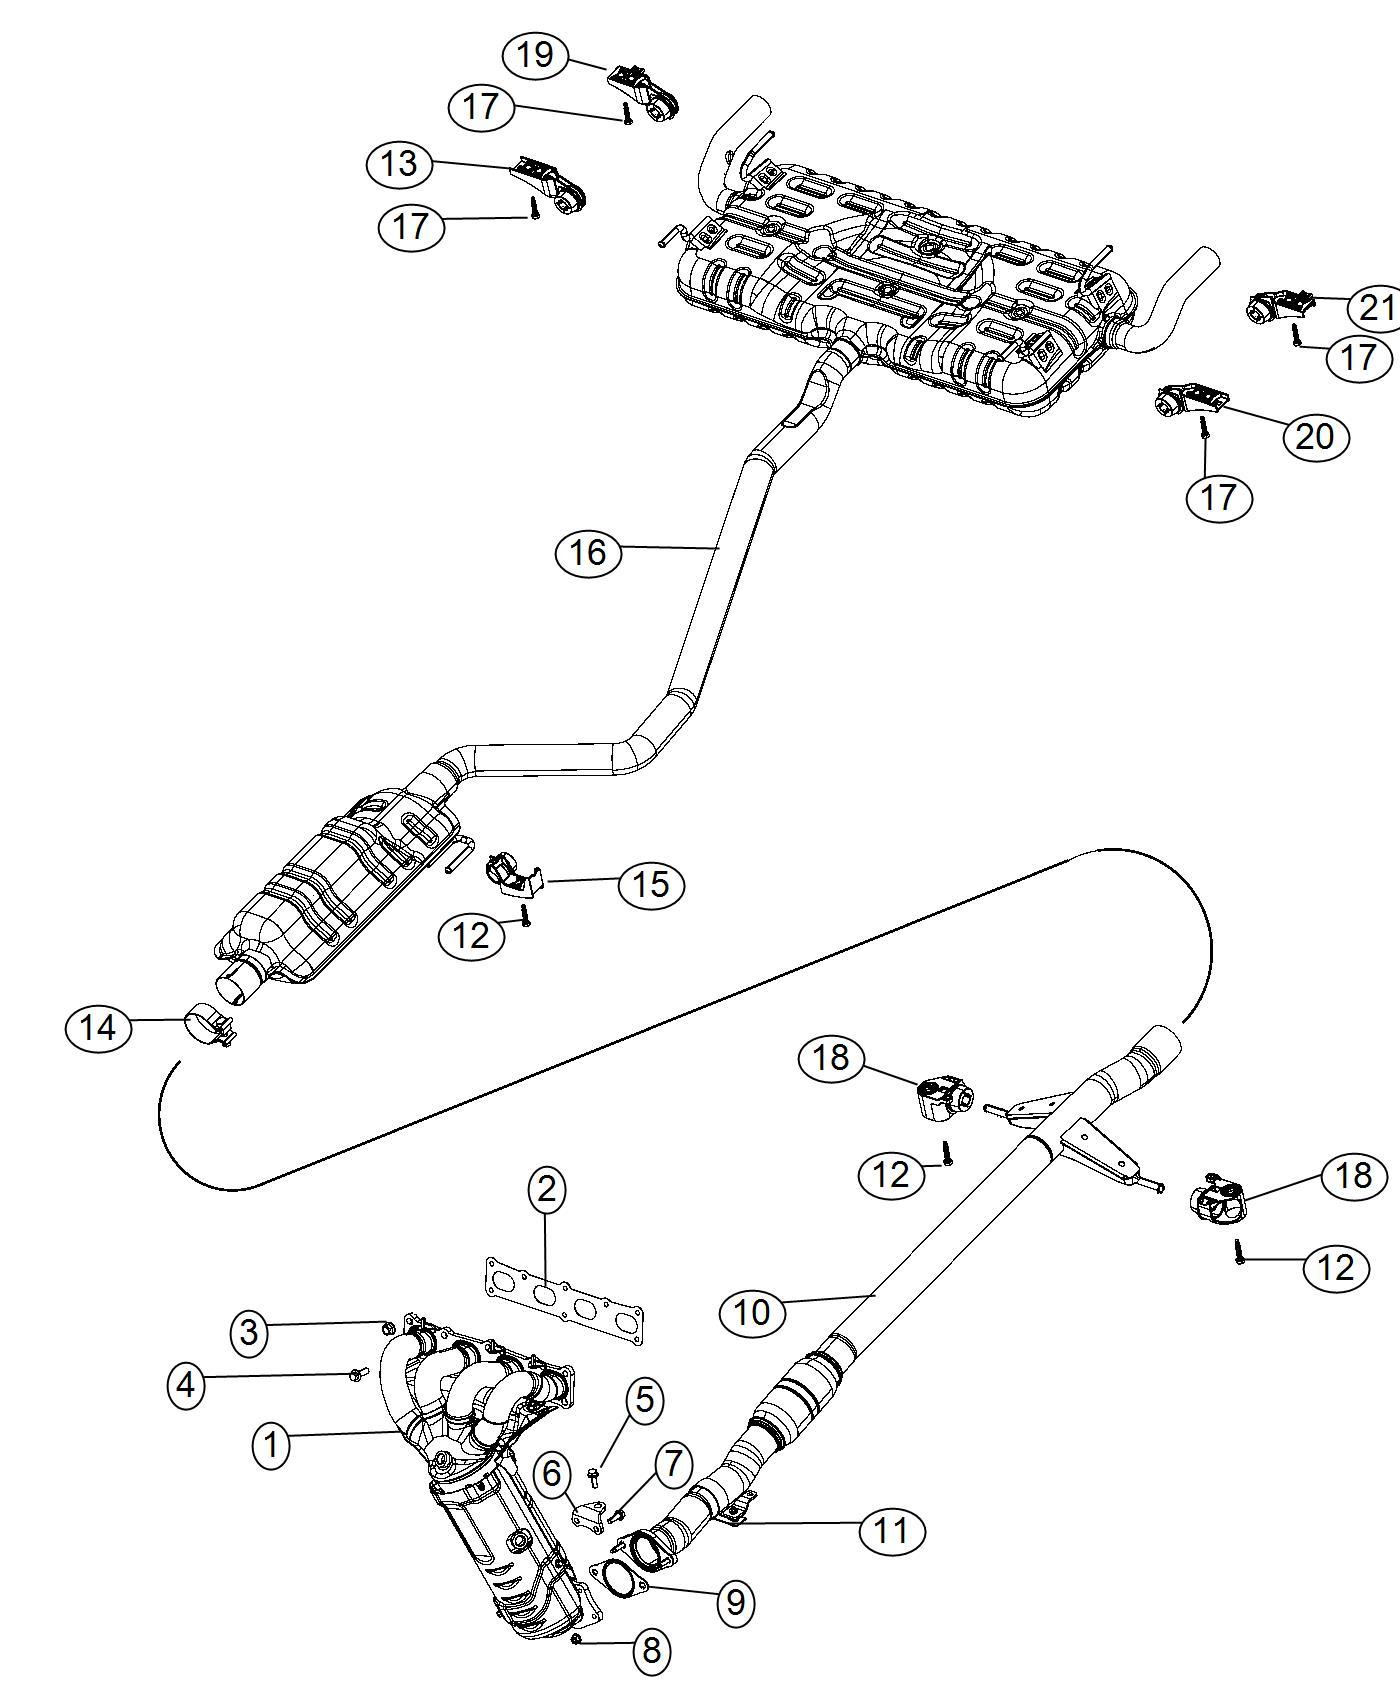 Chrysler 200 Manifold Exhaust And Catalytic